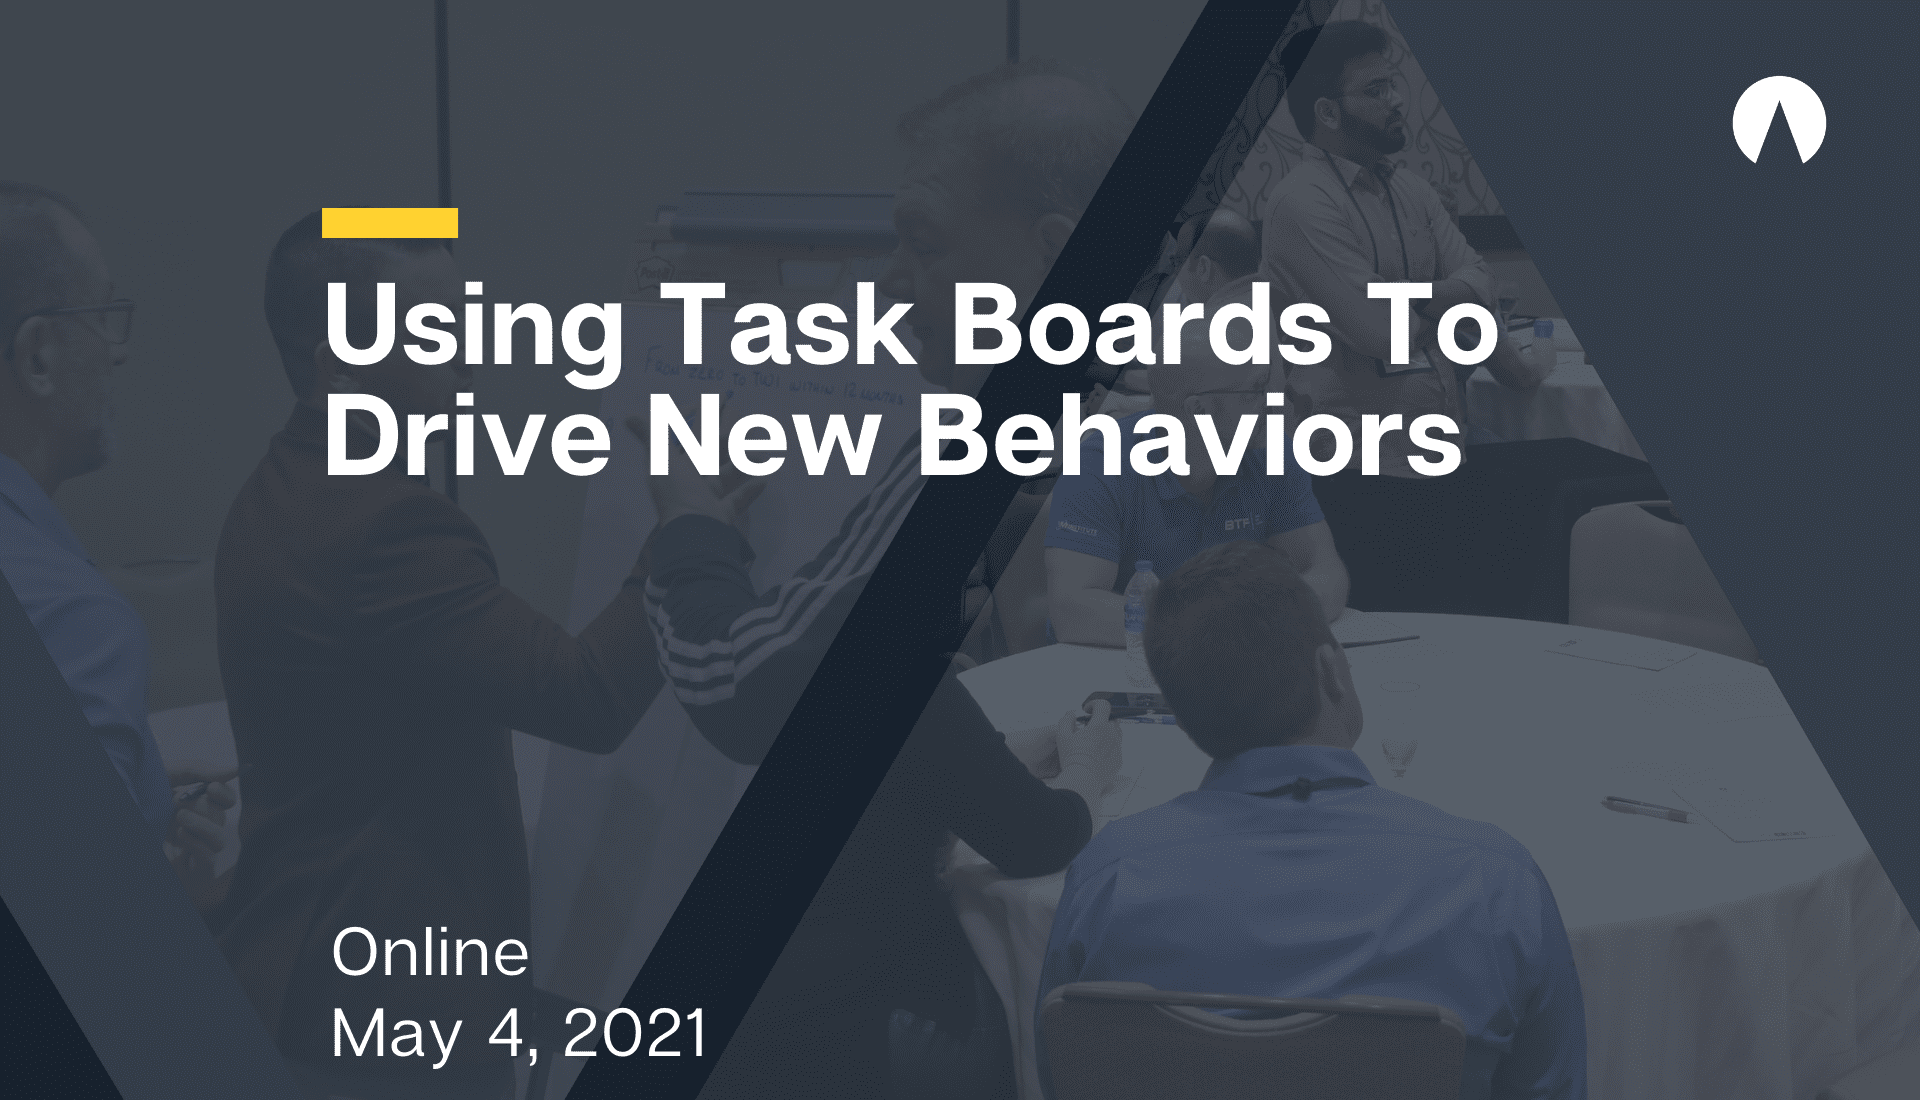 Using Task Boards To Drive New Behaviors